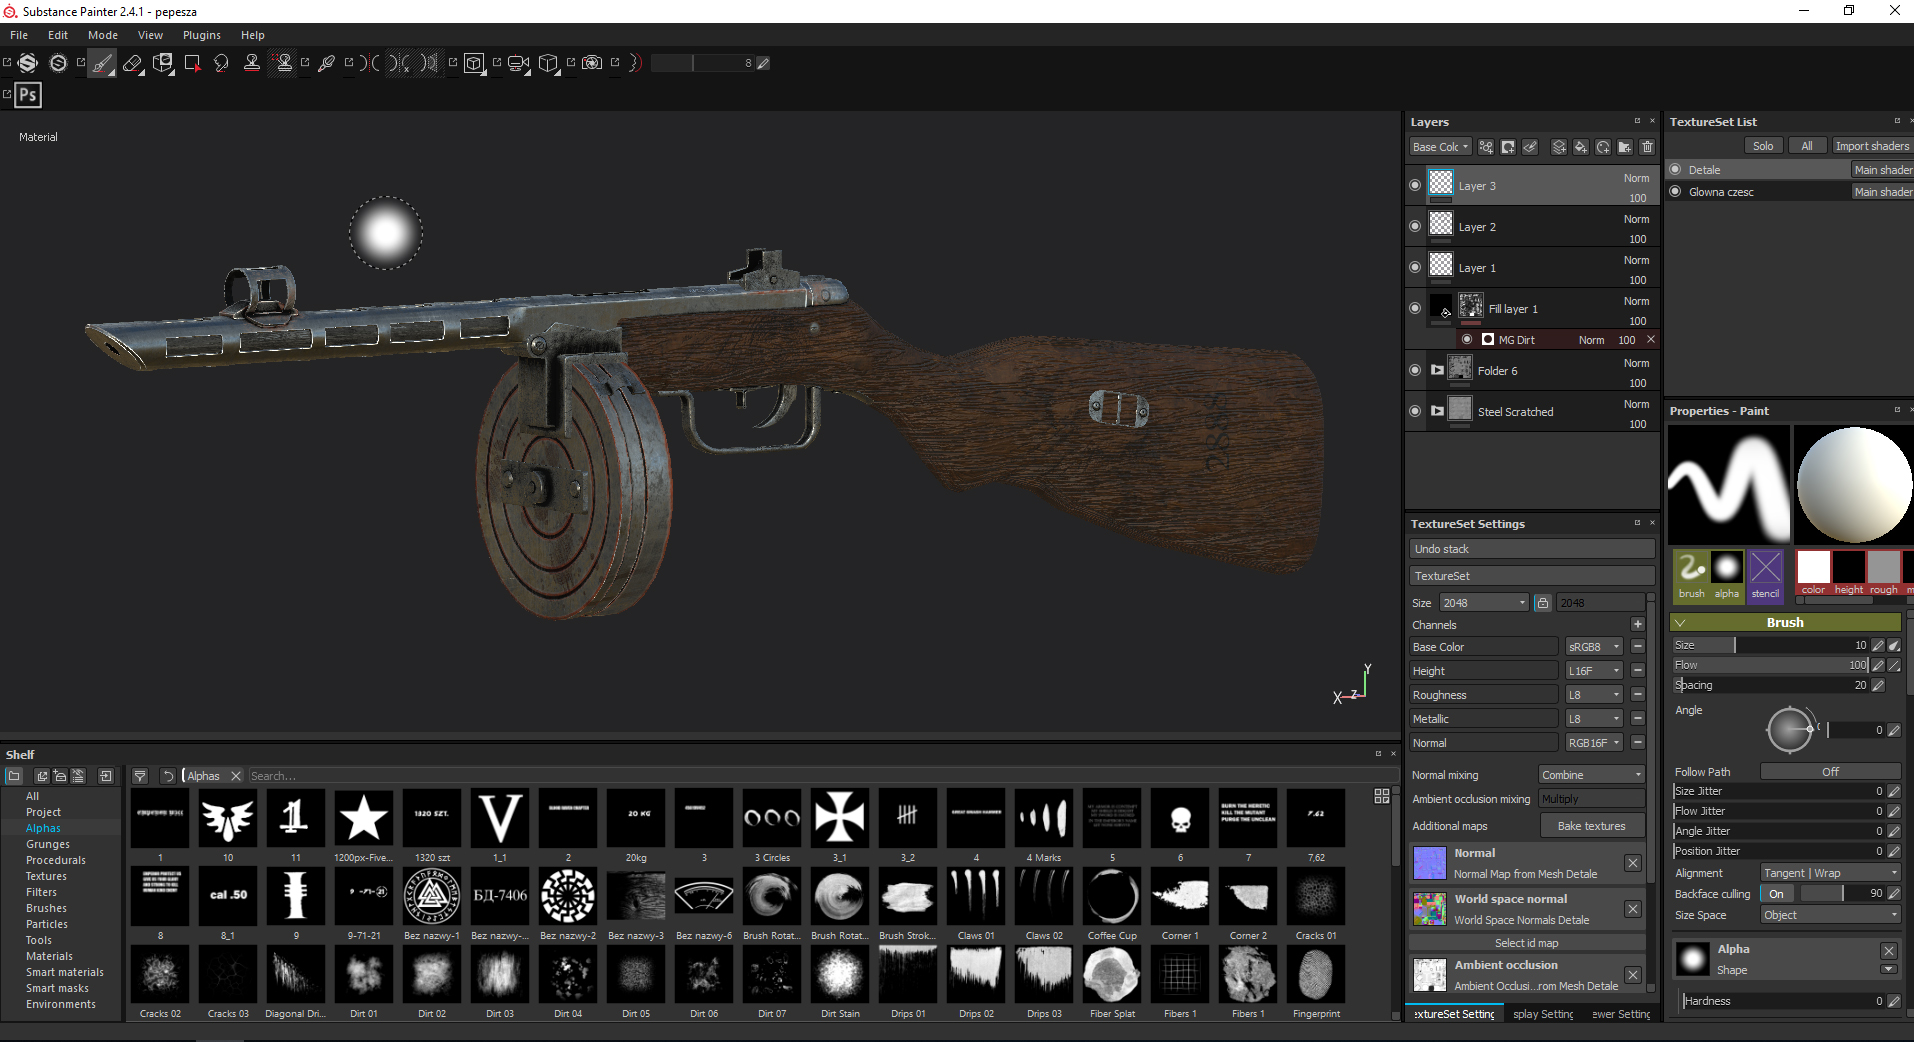 Three D Guns 2 - The PPSH wz. 41